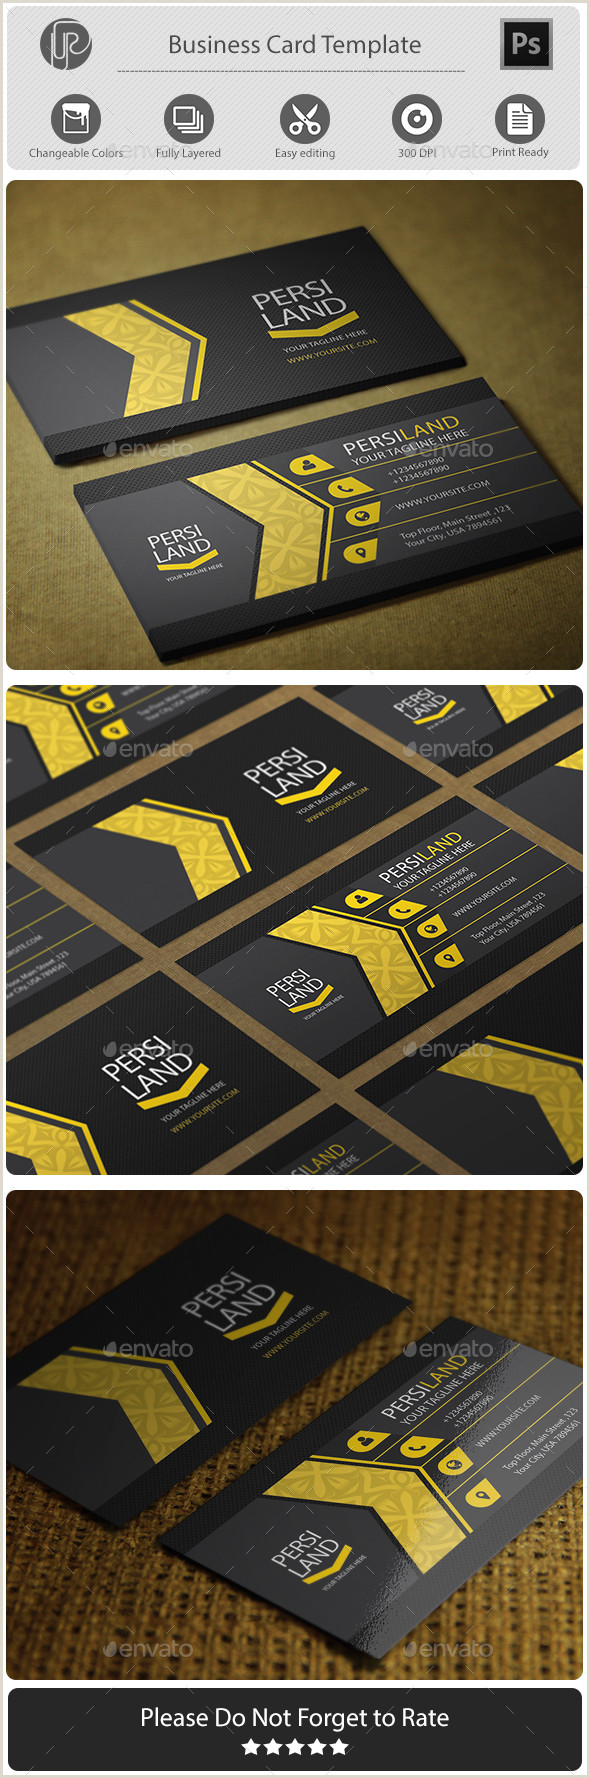 Personal Business Card Examples Personal Business Card Templates & Designs From Graphicriver